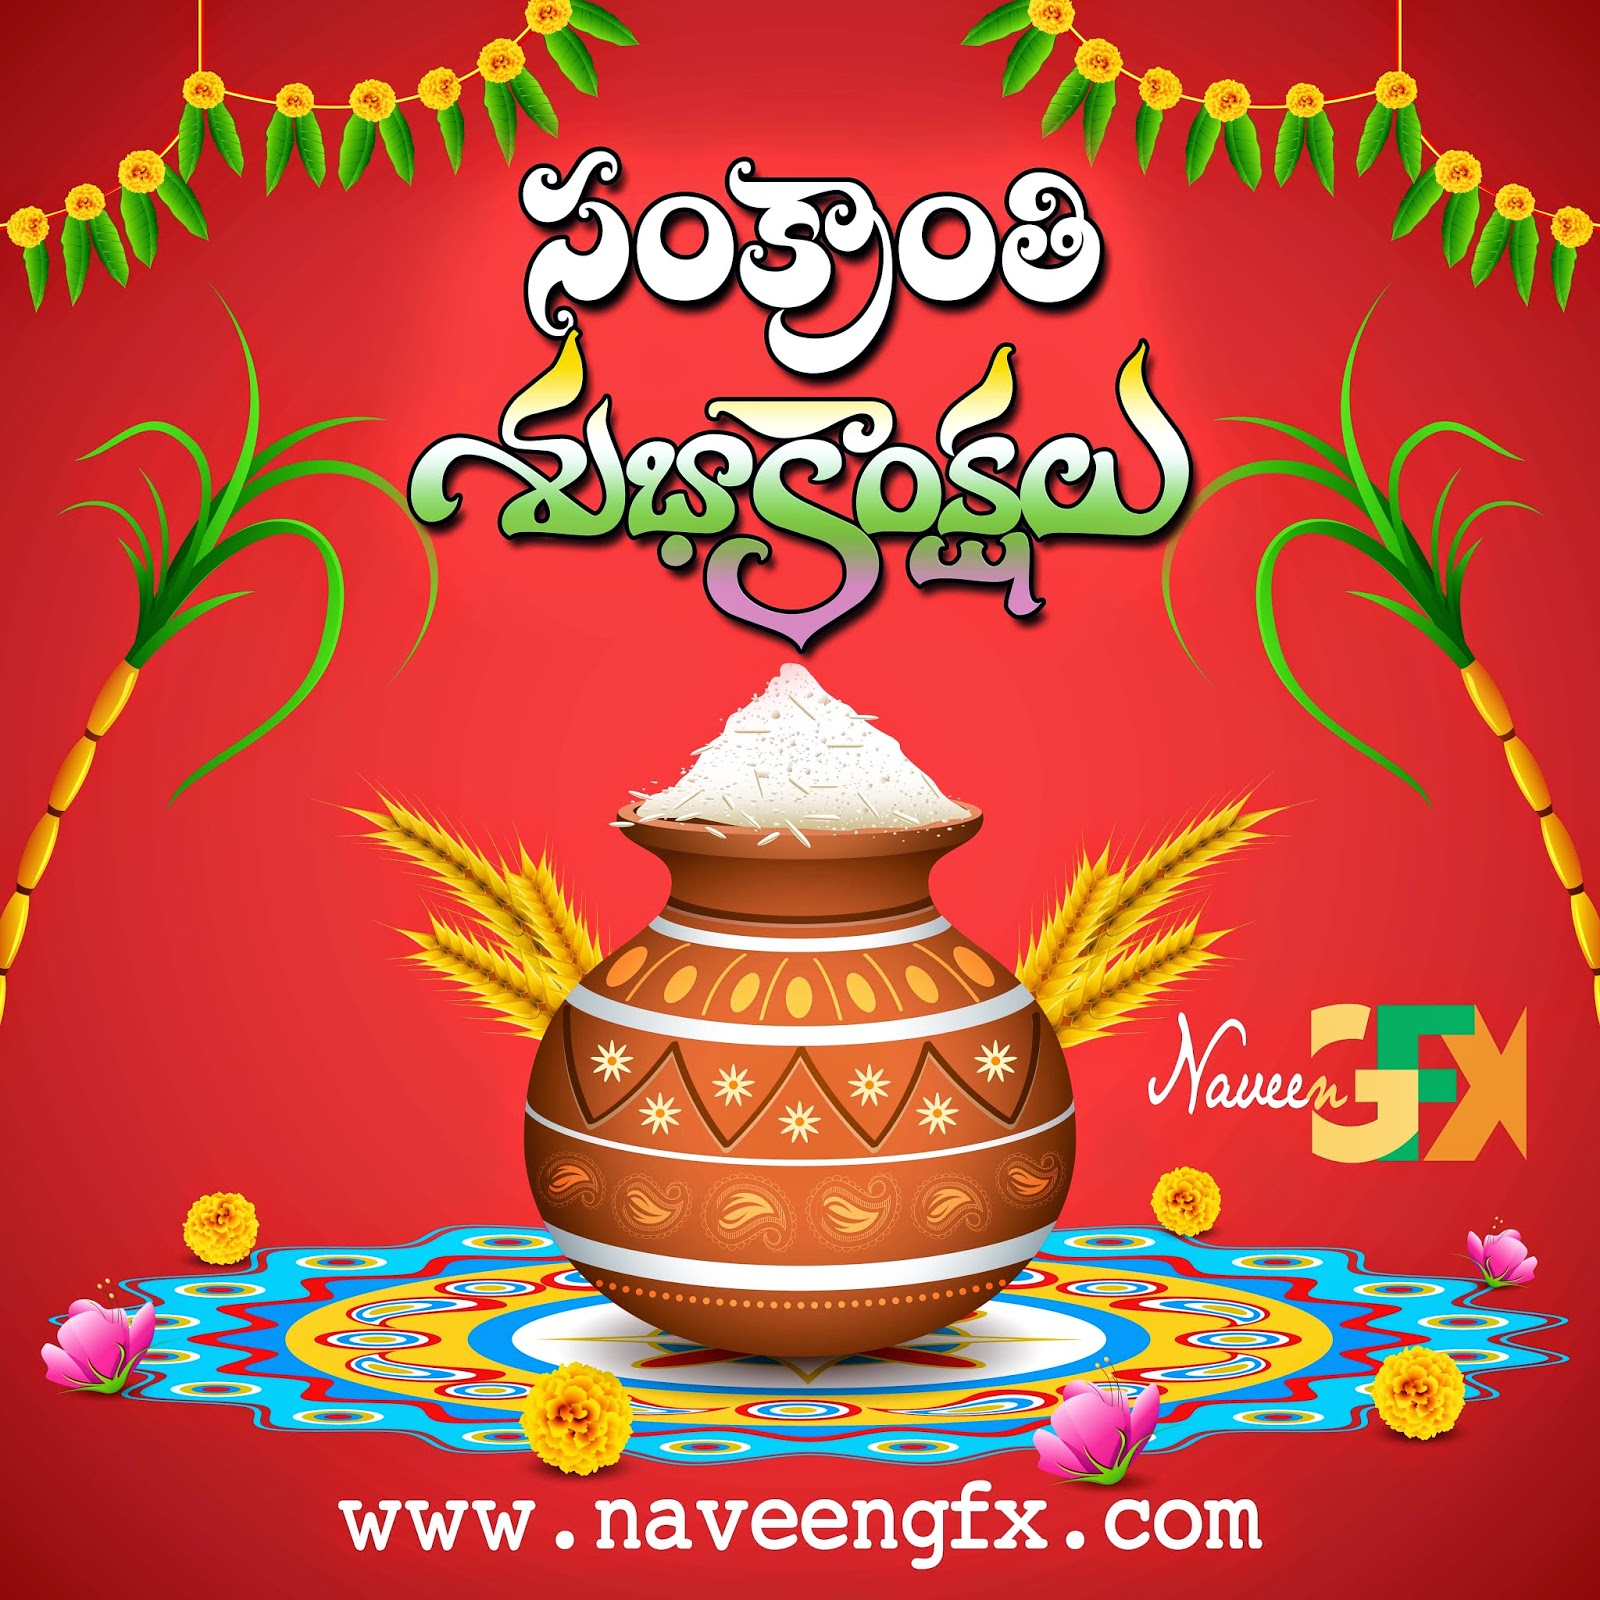 happy-sankranti-telugu-wishes-quotes-for-facebook-naveengfx.com